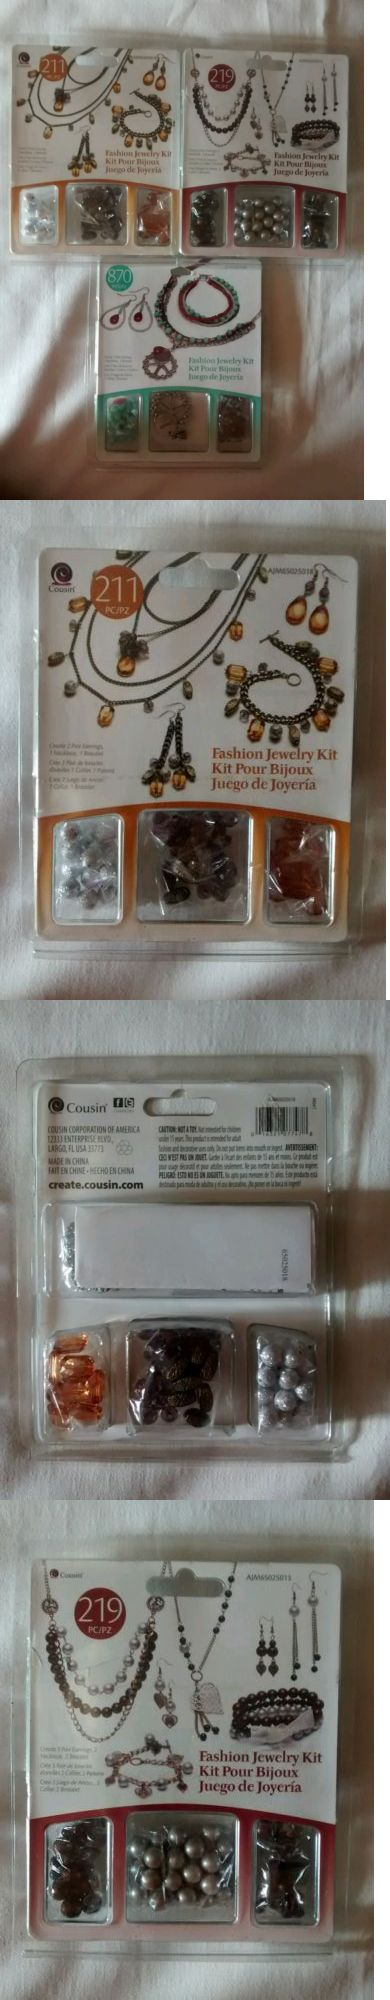 Other Jewelry Making Kits 162102: (3-Kits)Cousin Fashion Jewelry Kits New -> BUY IT NOW ONLY: $33 on eBay!